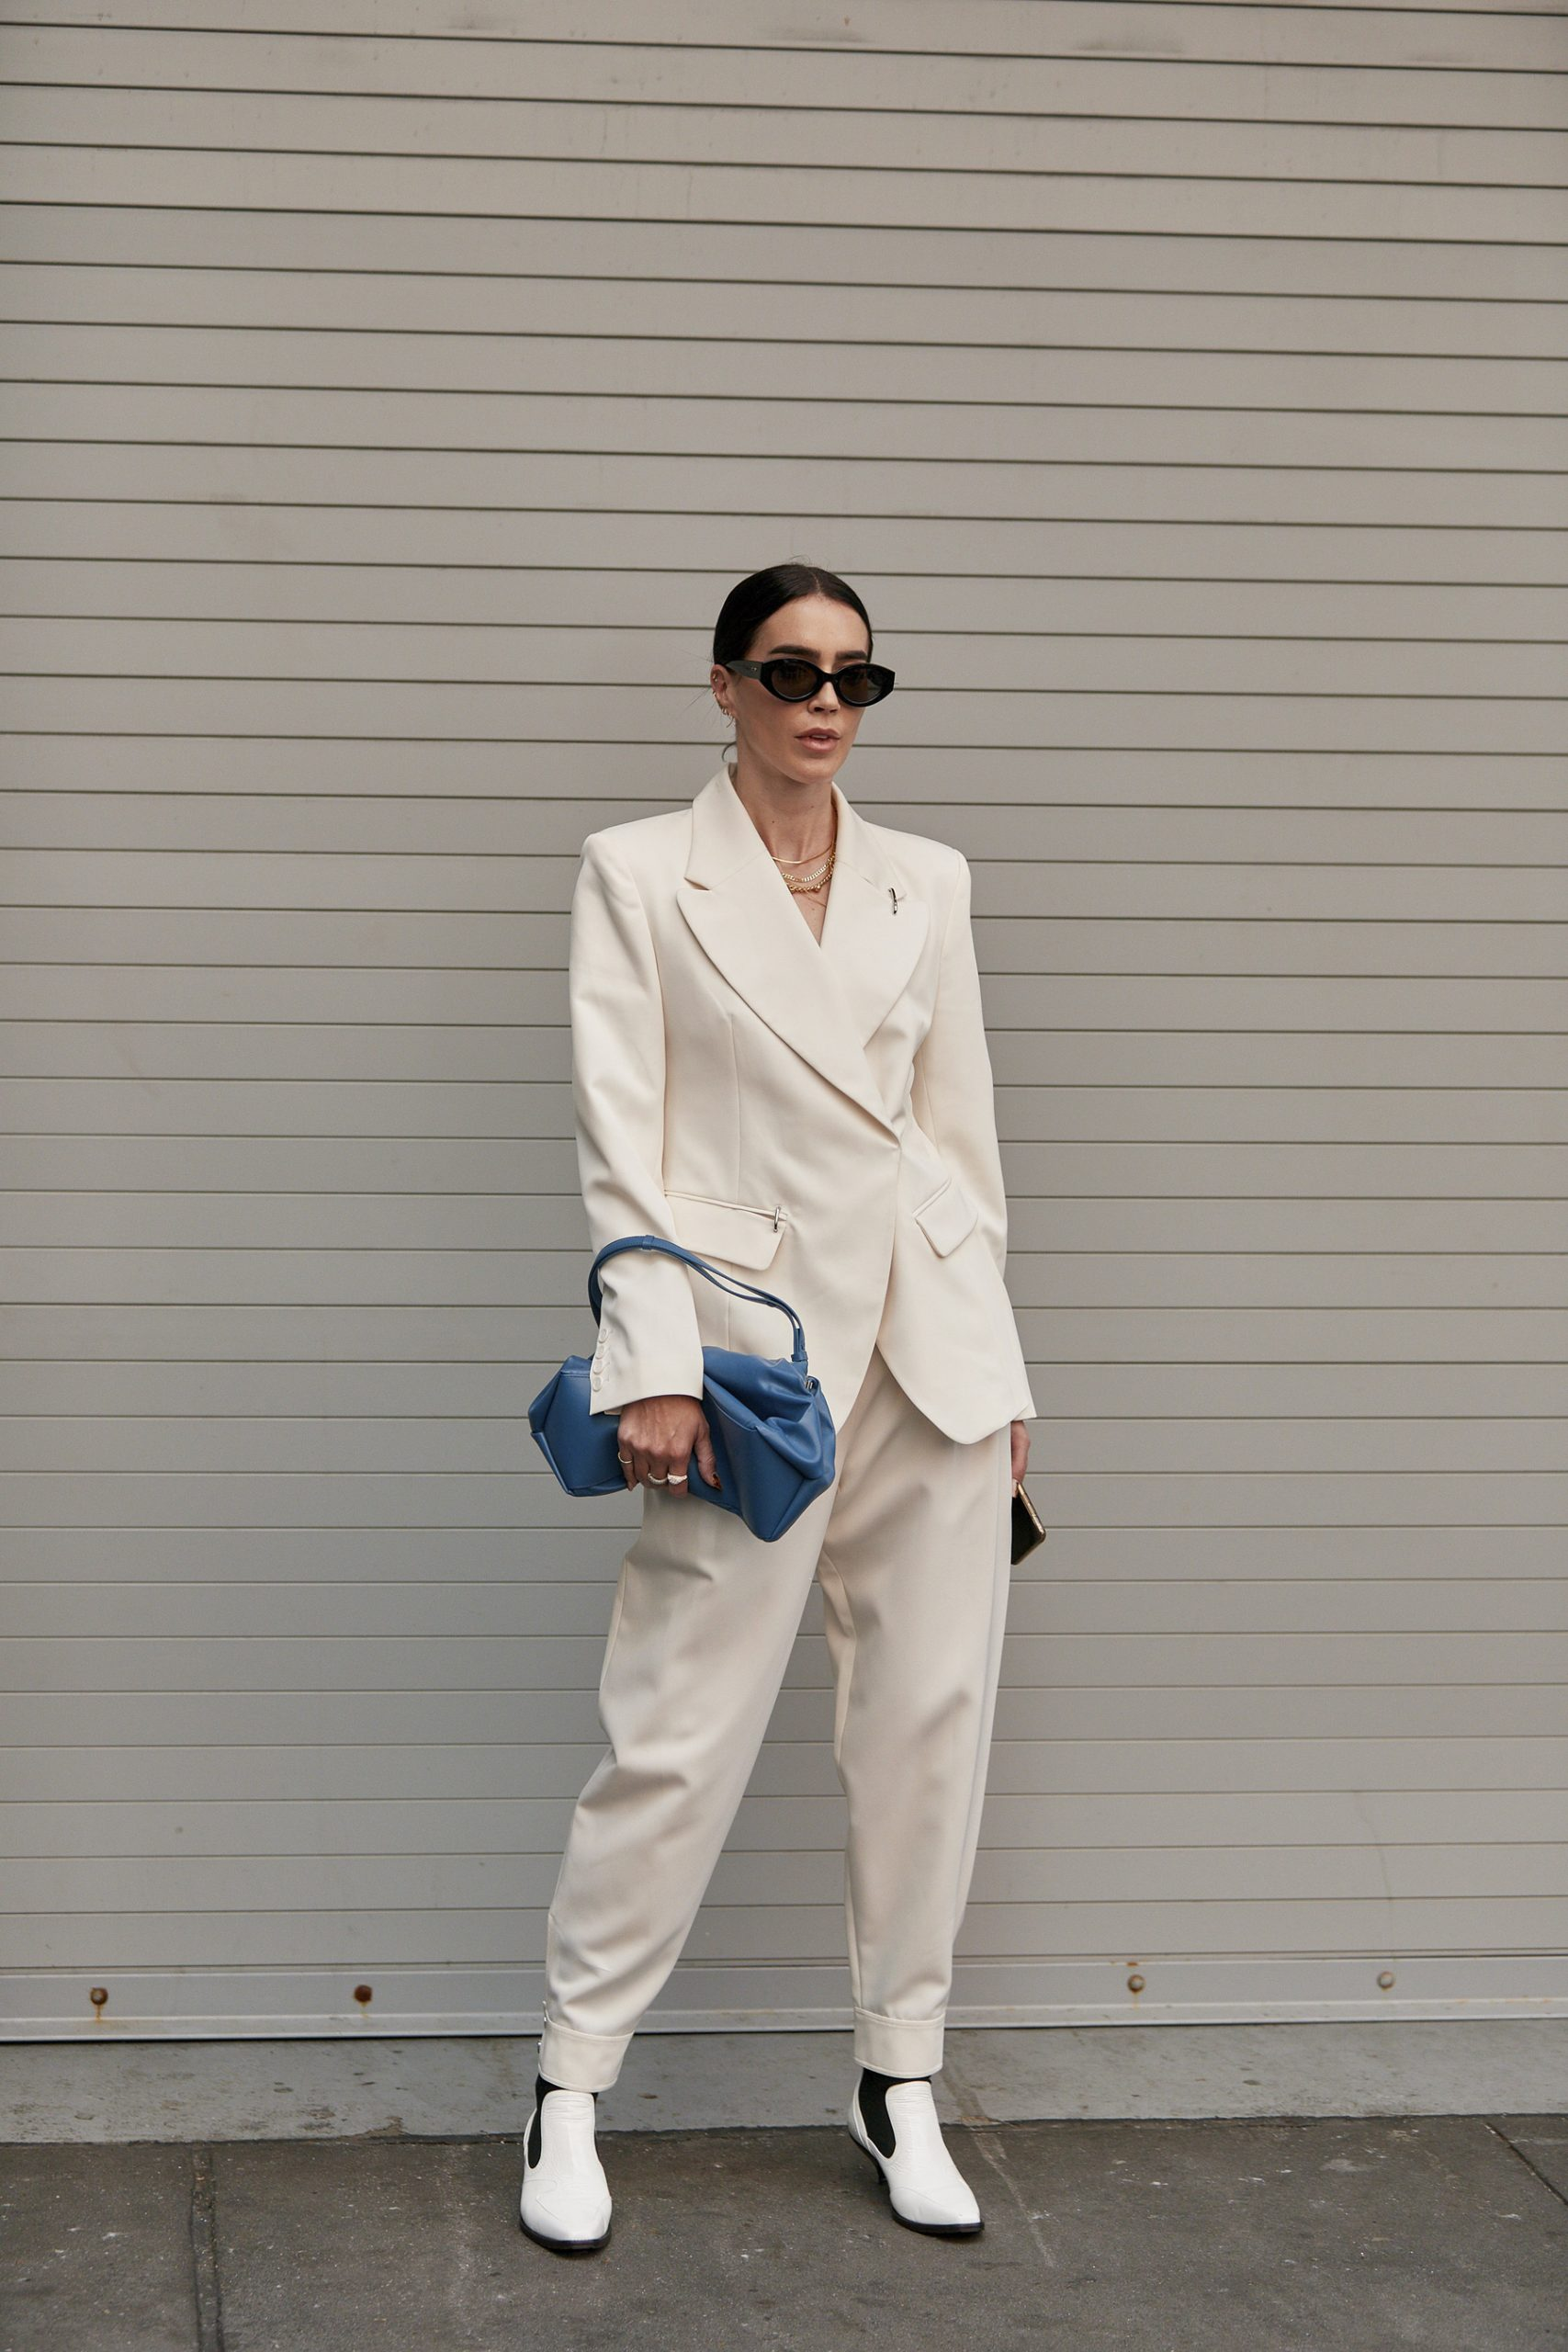 Spring 2020 Fashion Street Trend - Shades of White